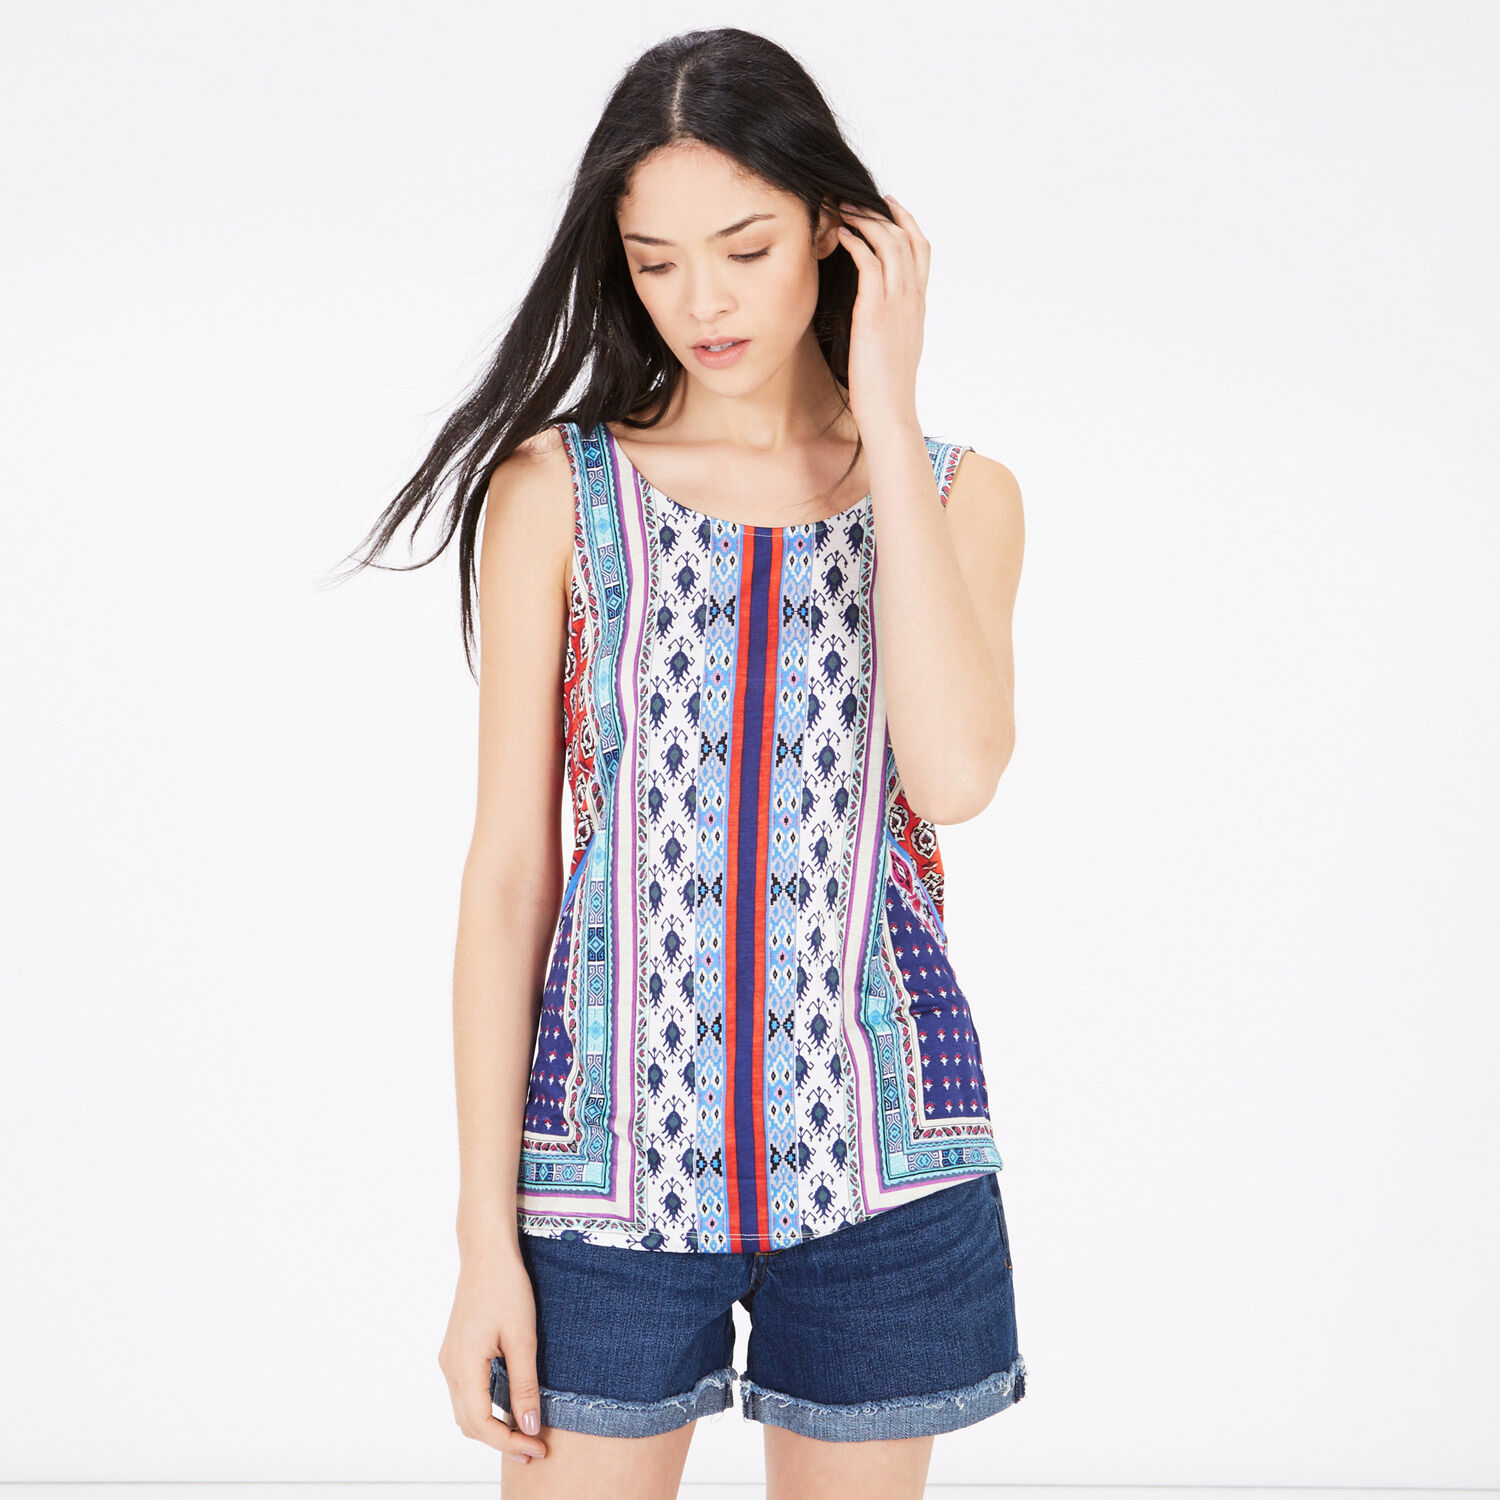 Essential vest tops for women in plain and lace styles. Versatile cami tops for your casual look. Next day delivery and free returns available.